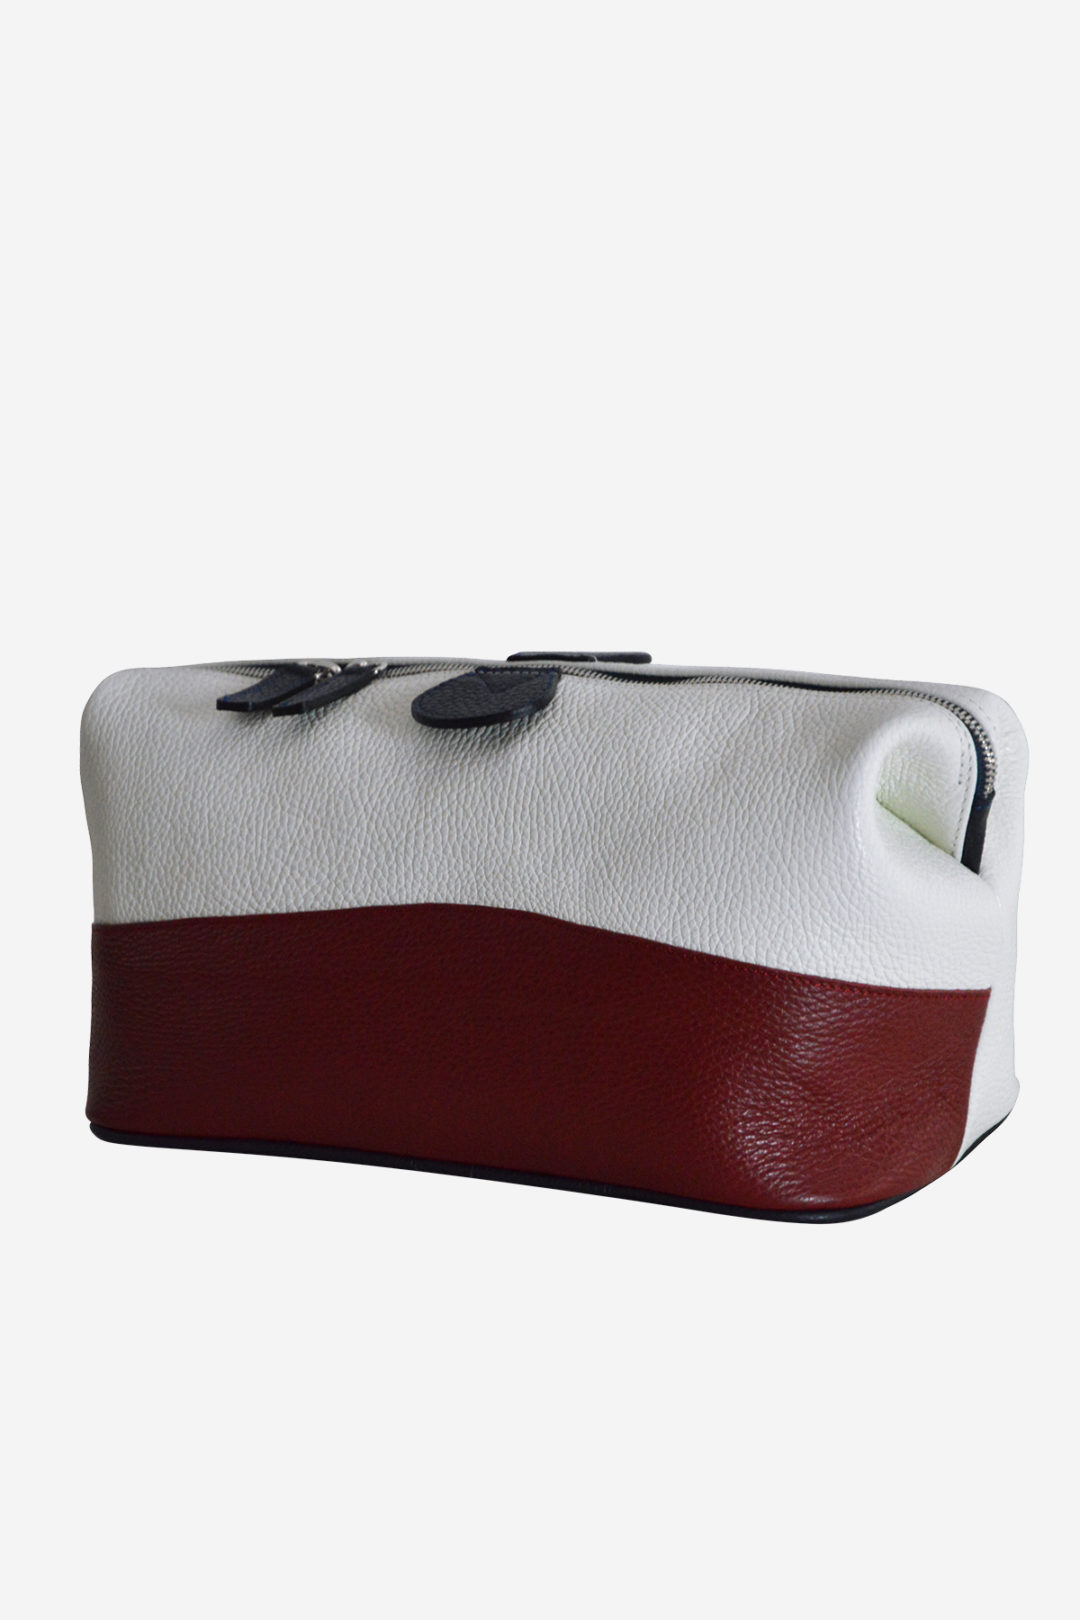 Original Sport Beauty Case